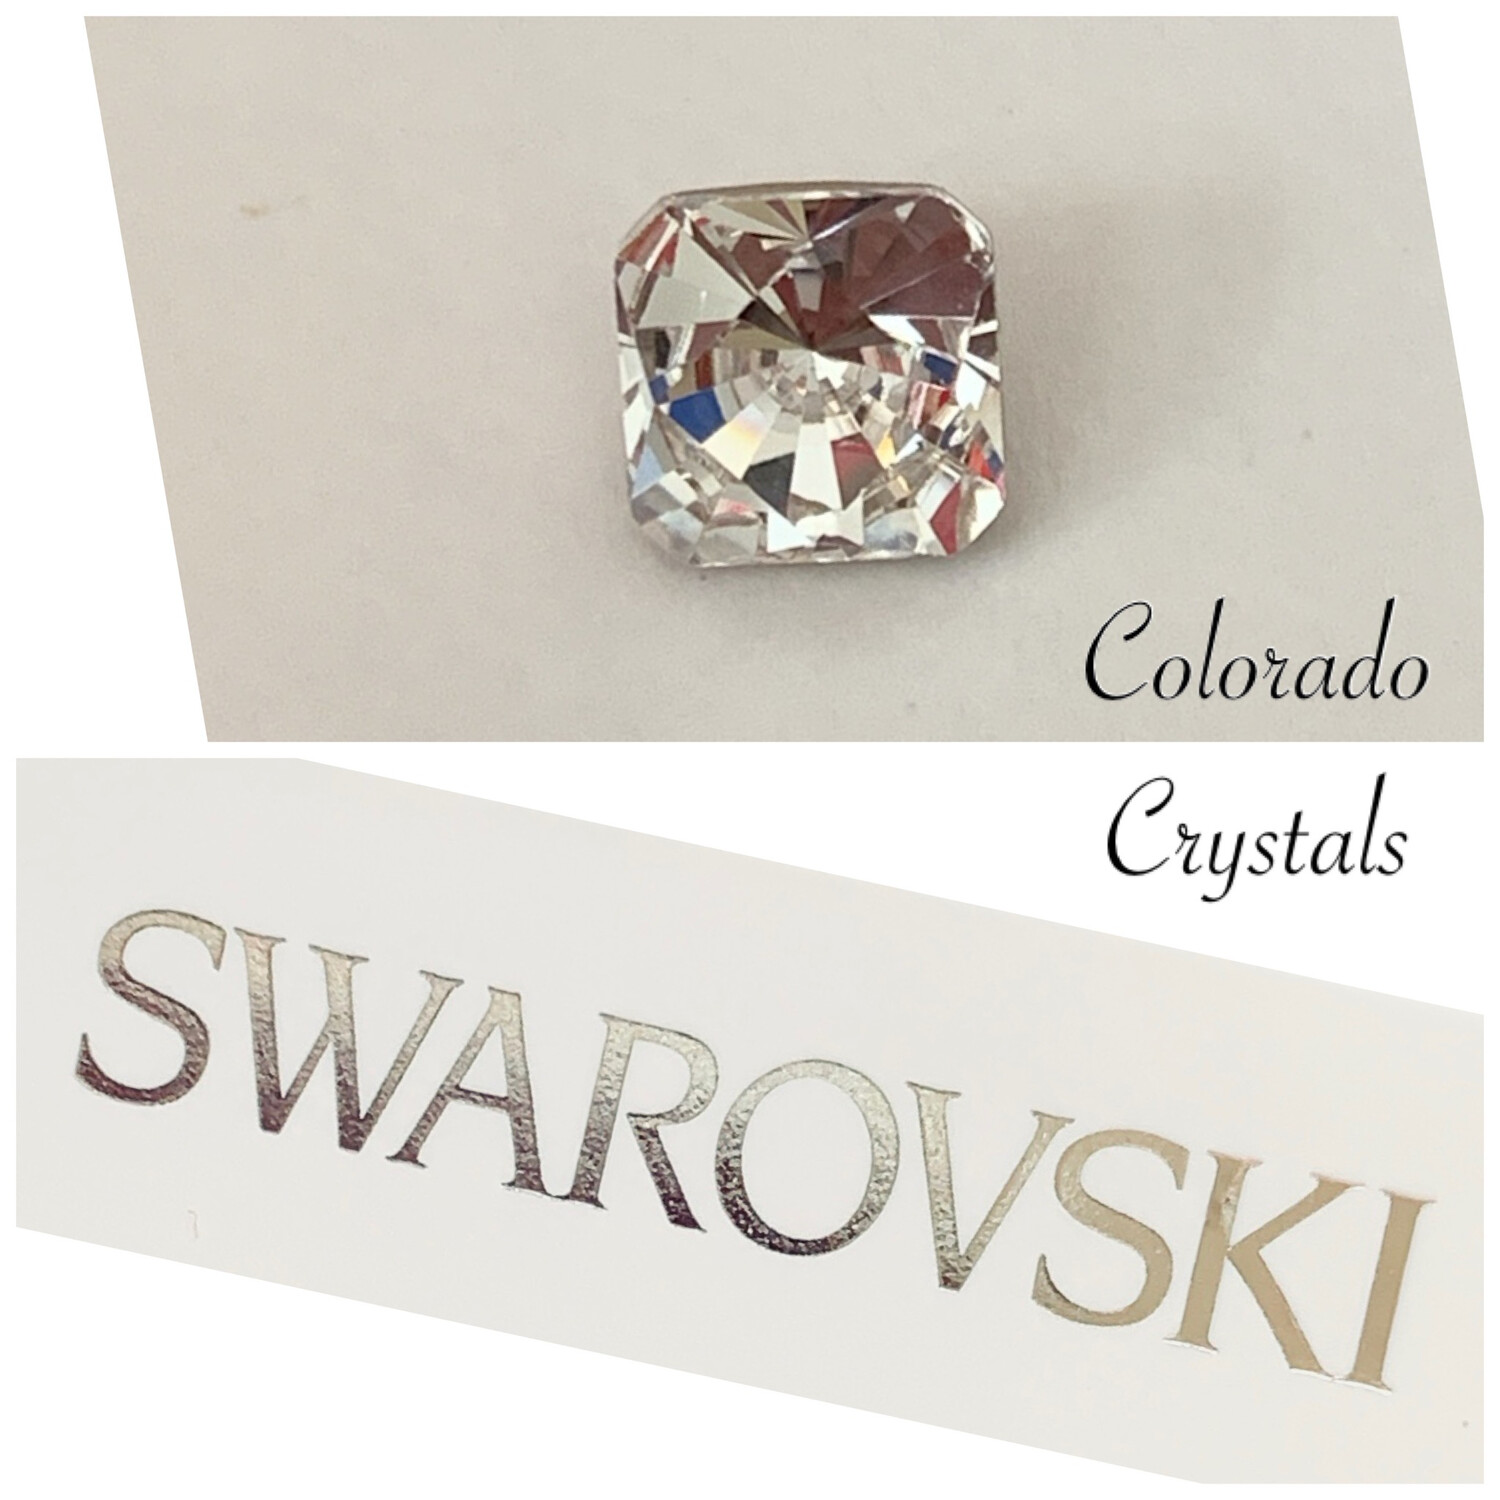 Kaleidoscope Square Fancy Crystal 4499 Swarovski